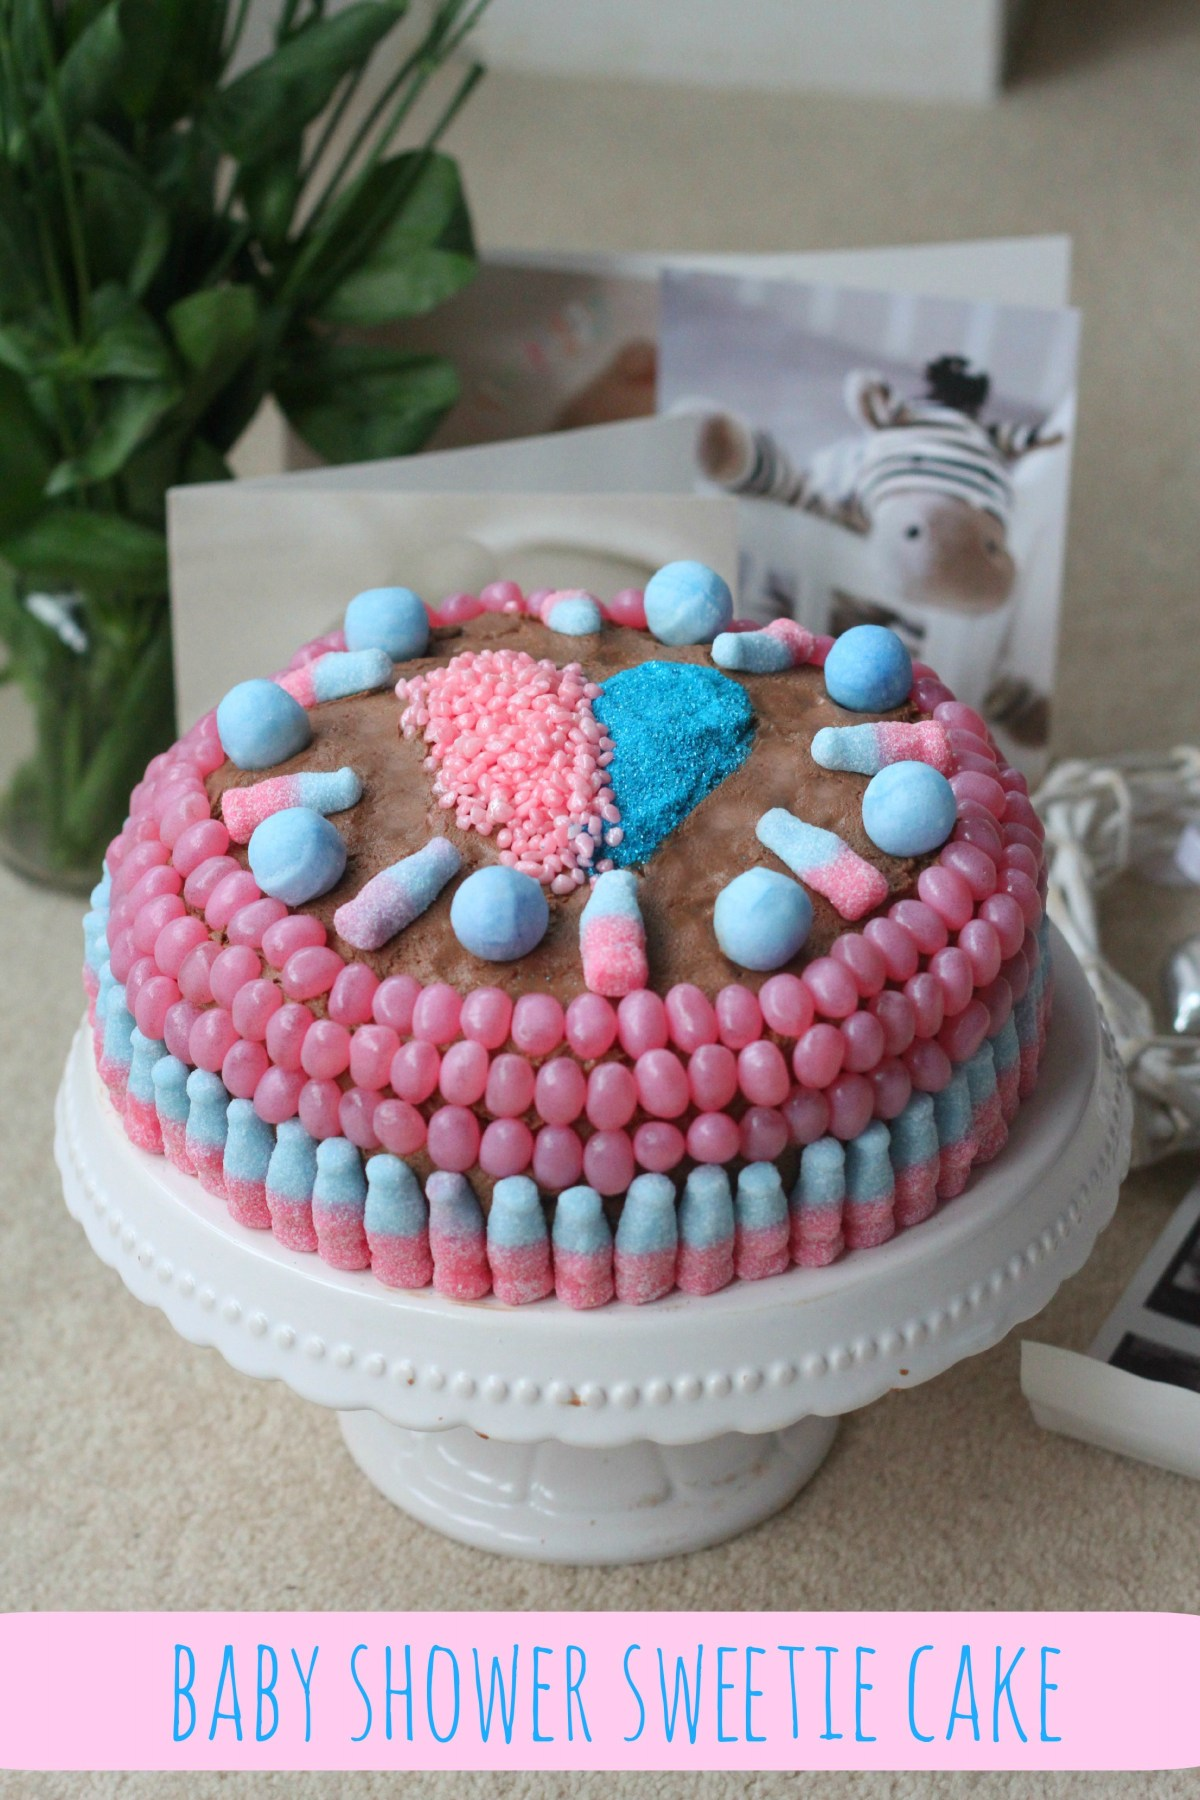 Baby Shower Sweetie Cake (uni-sex)